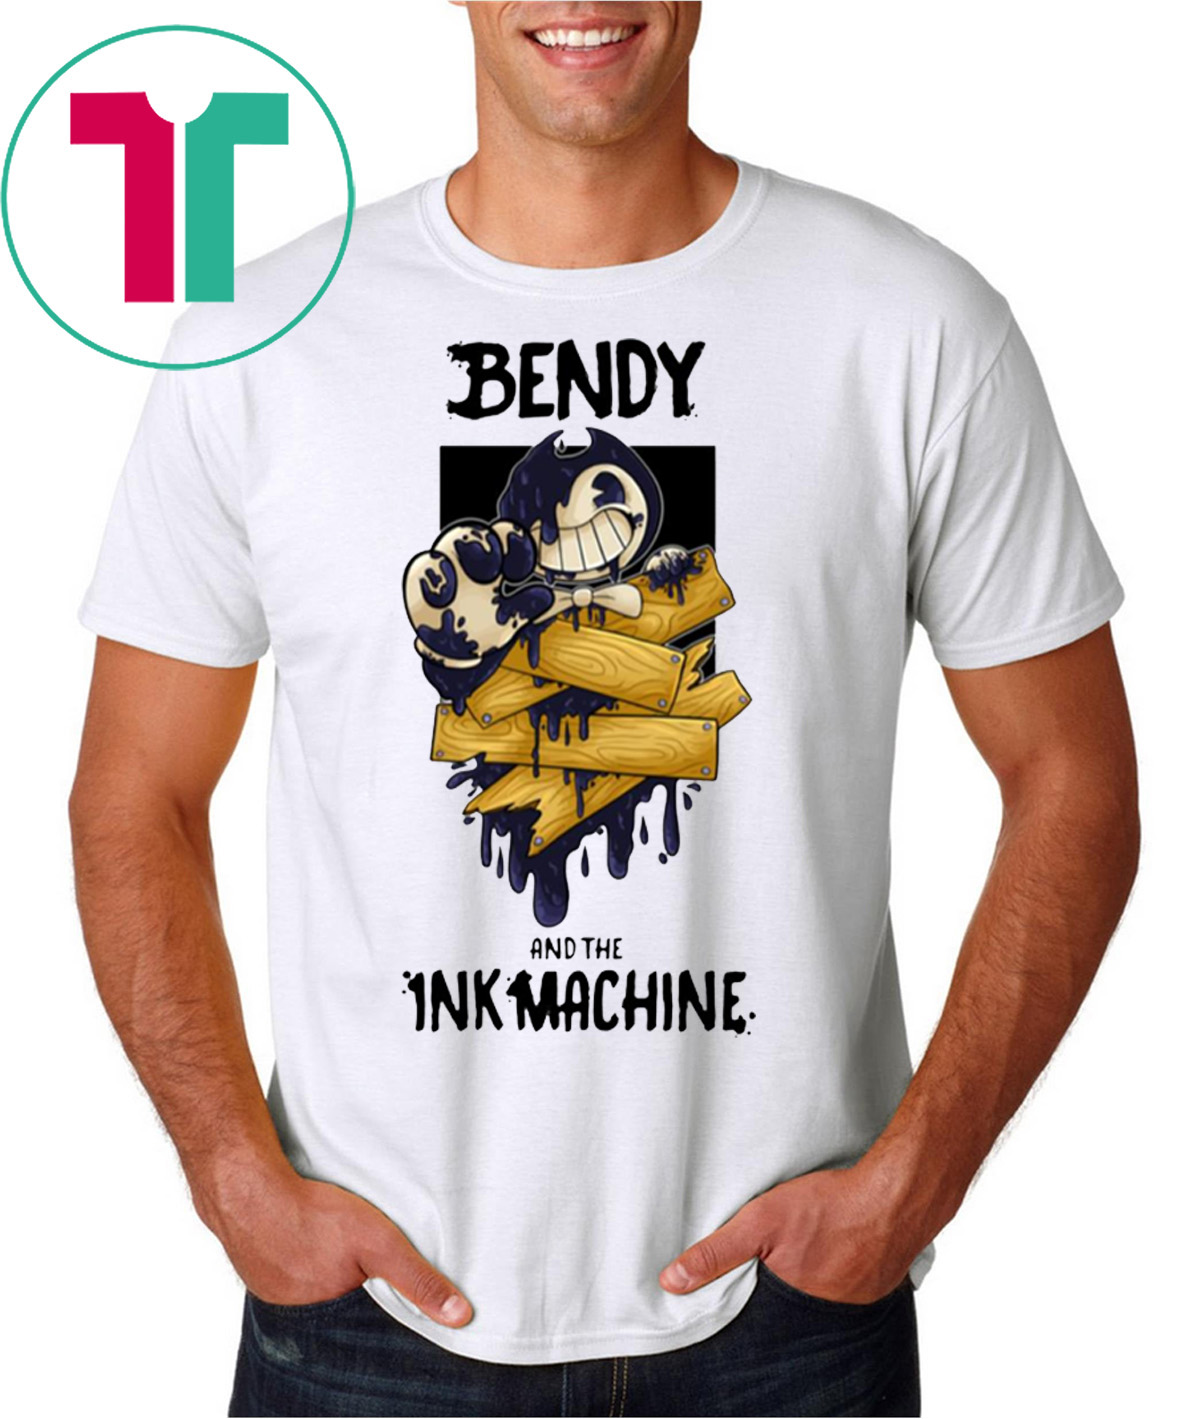 Bendy And The Ink Machine T-Shirt - OrderQuilt.com